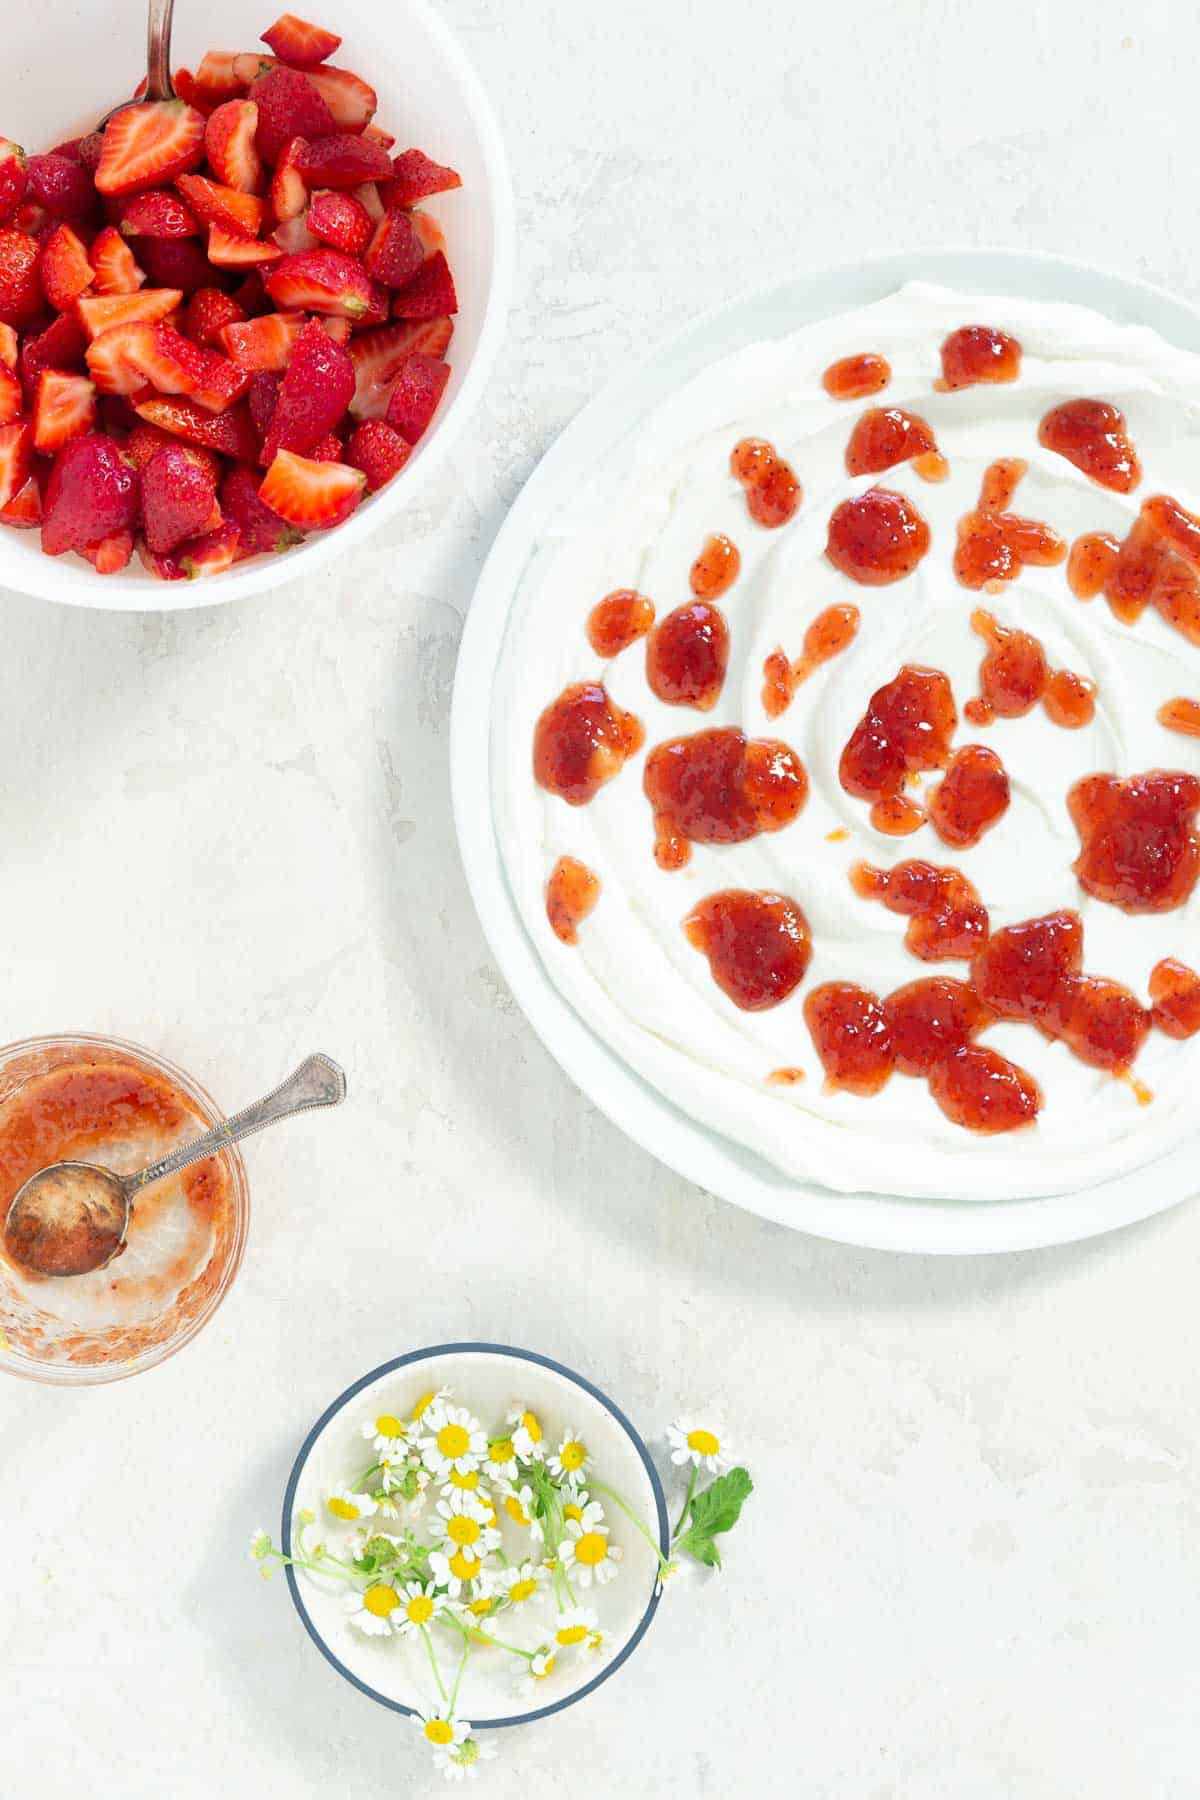 Yogurt spread on a large white serving plate with strawberry jam on top. Fresh chamomile flowers, strawberry jam, and fresh strawberries in separate bowls on the side.